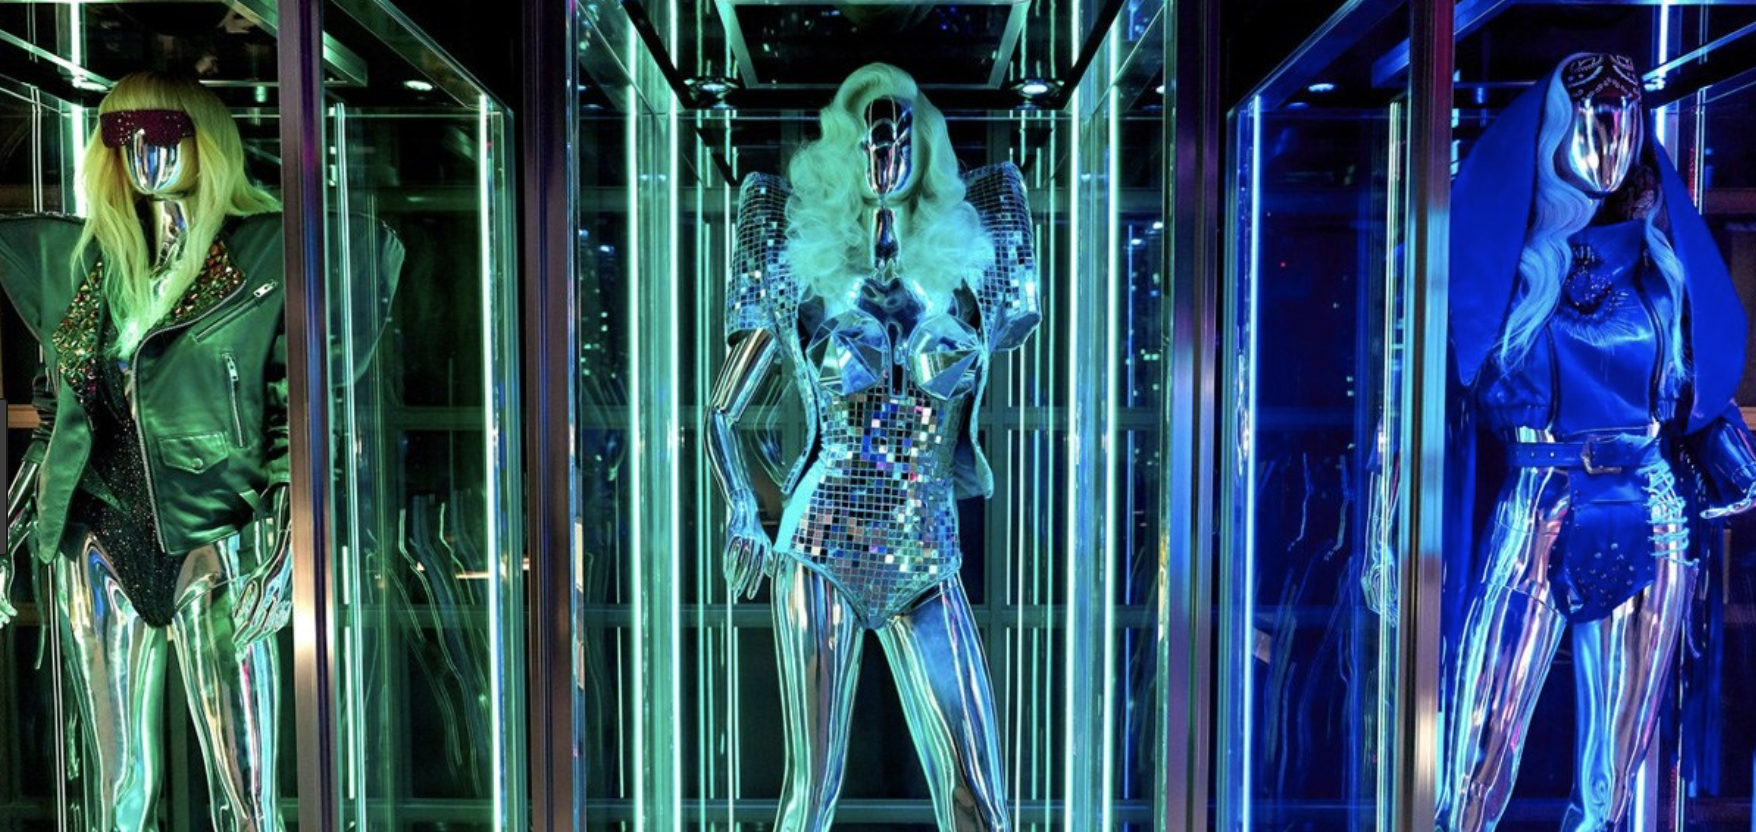 Lady Gaga Opens Haus of Gaga Exhibition in Las Vegas